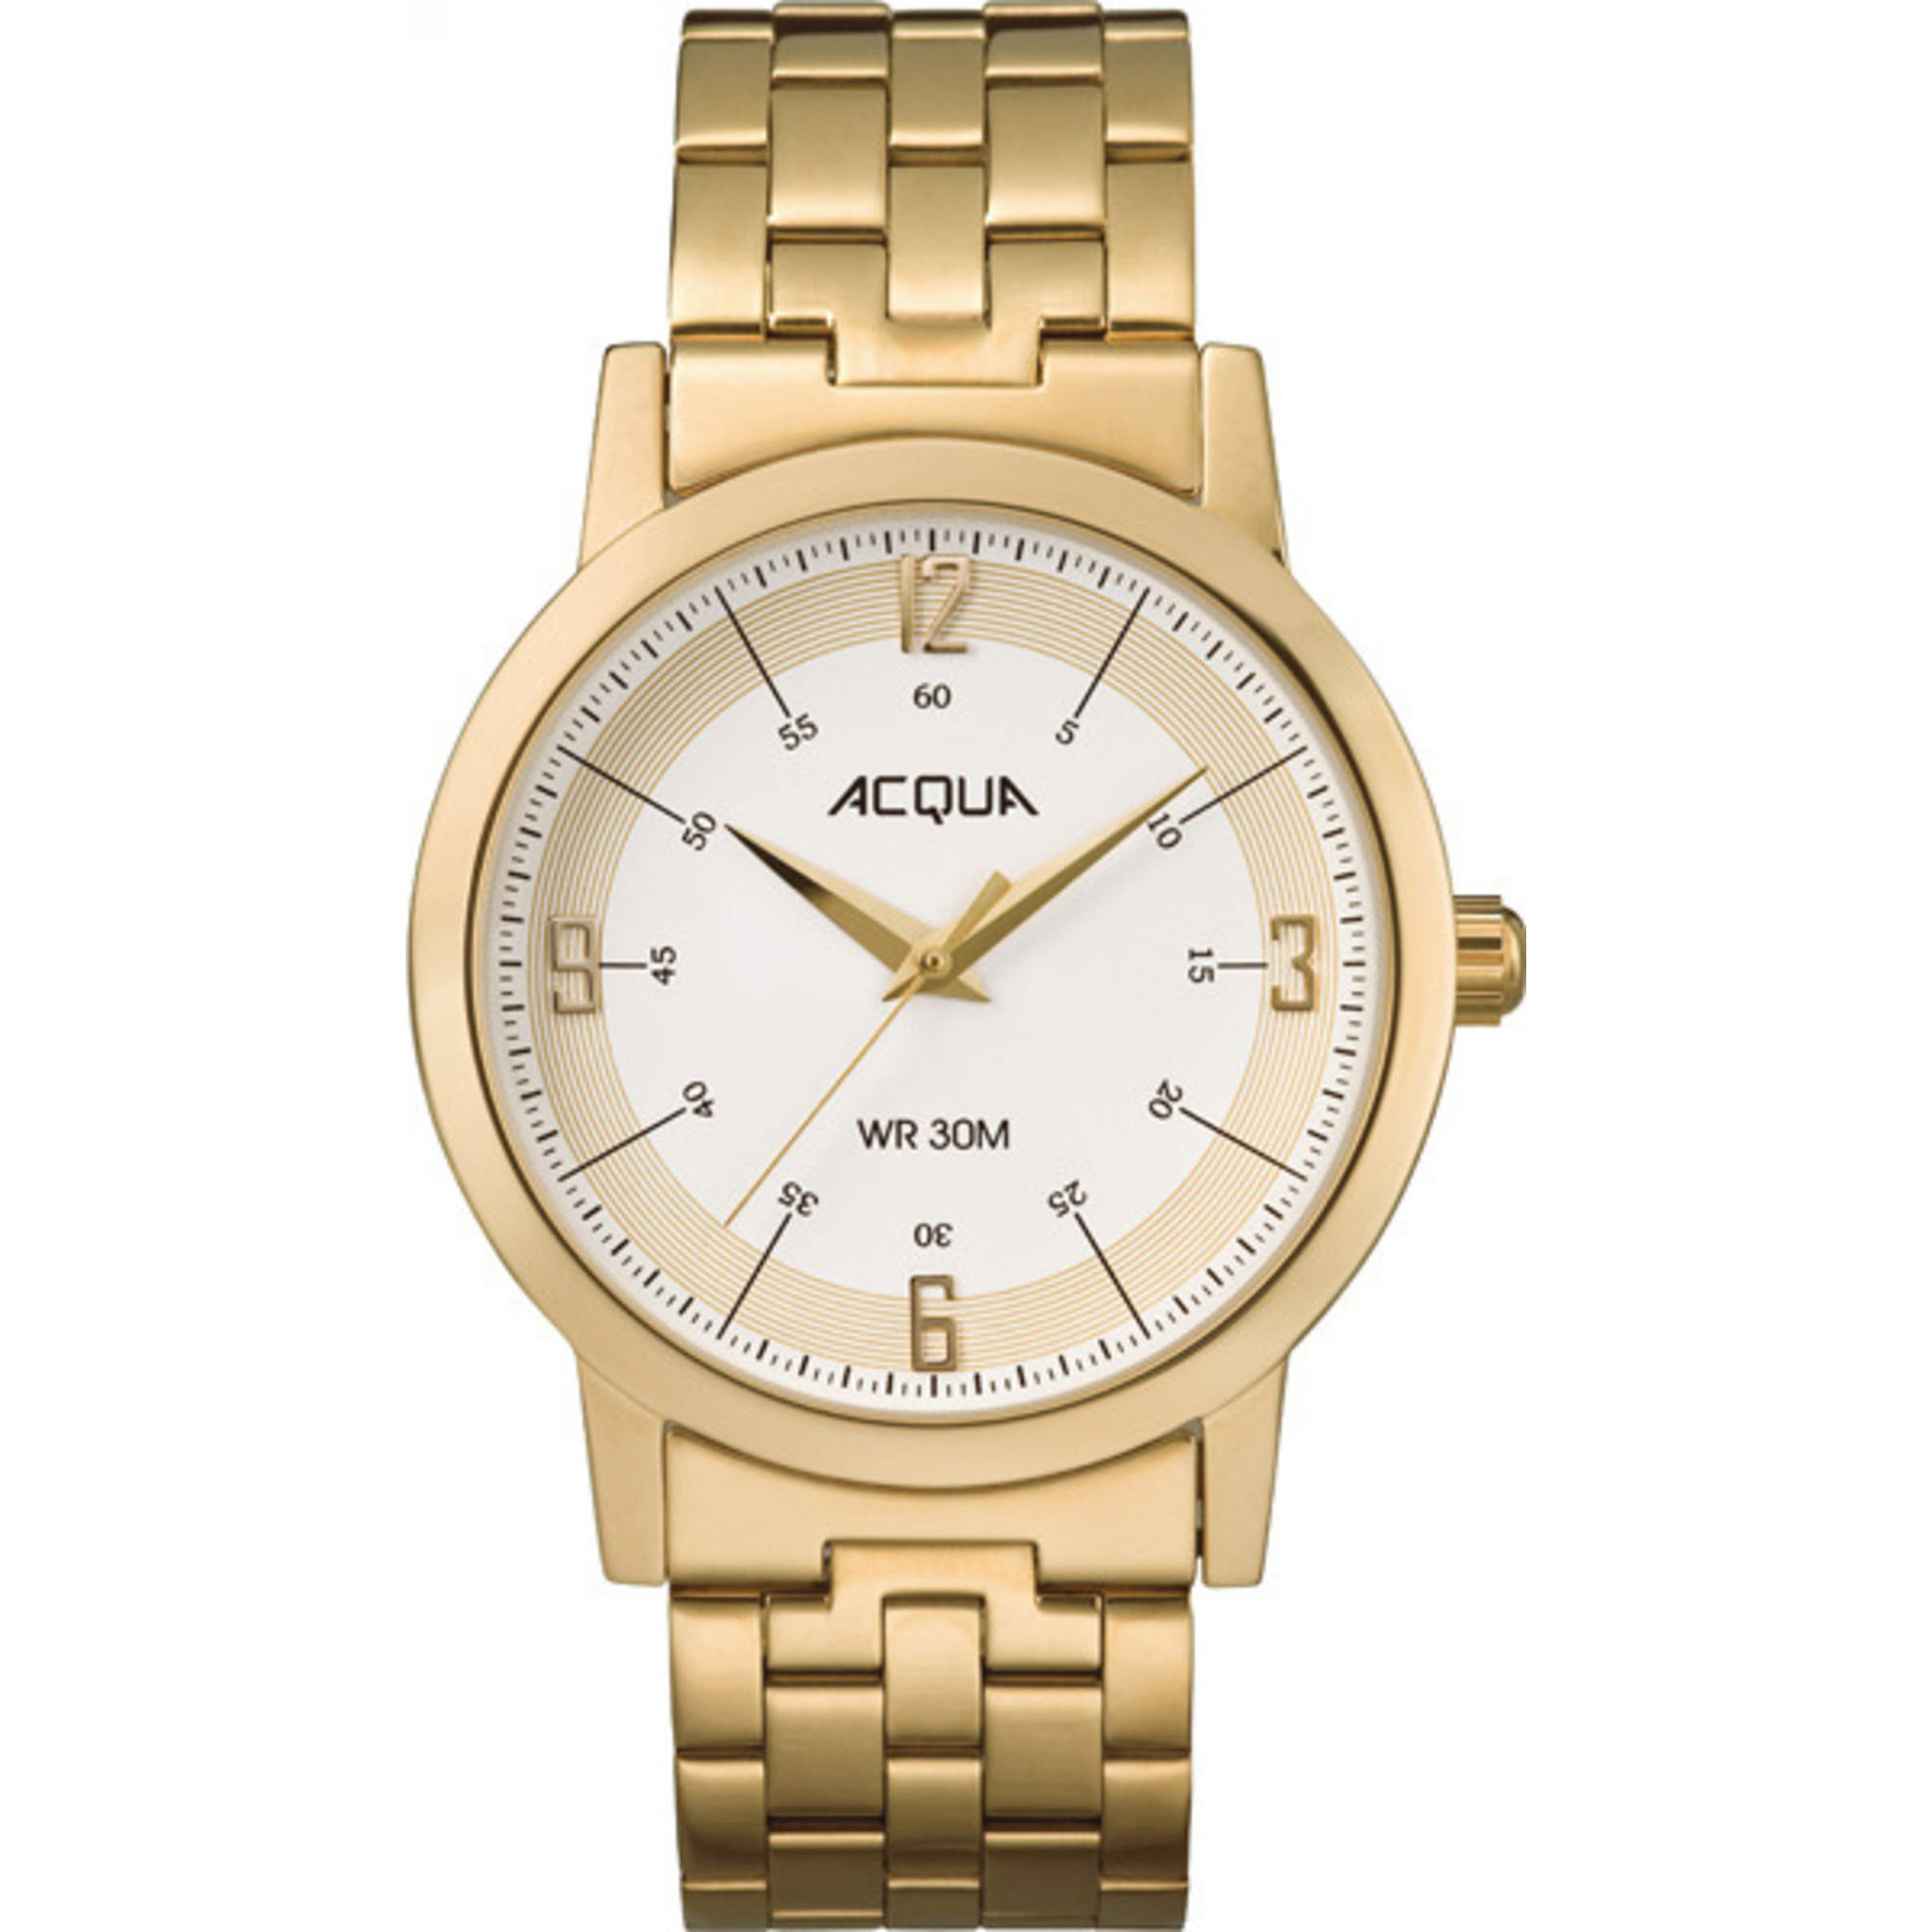 Image of Acqua by Timex Men's Gold-Tone/Cream Watch, Stainless Steel Bracelet